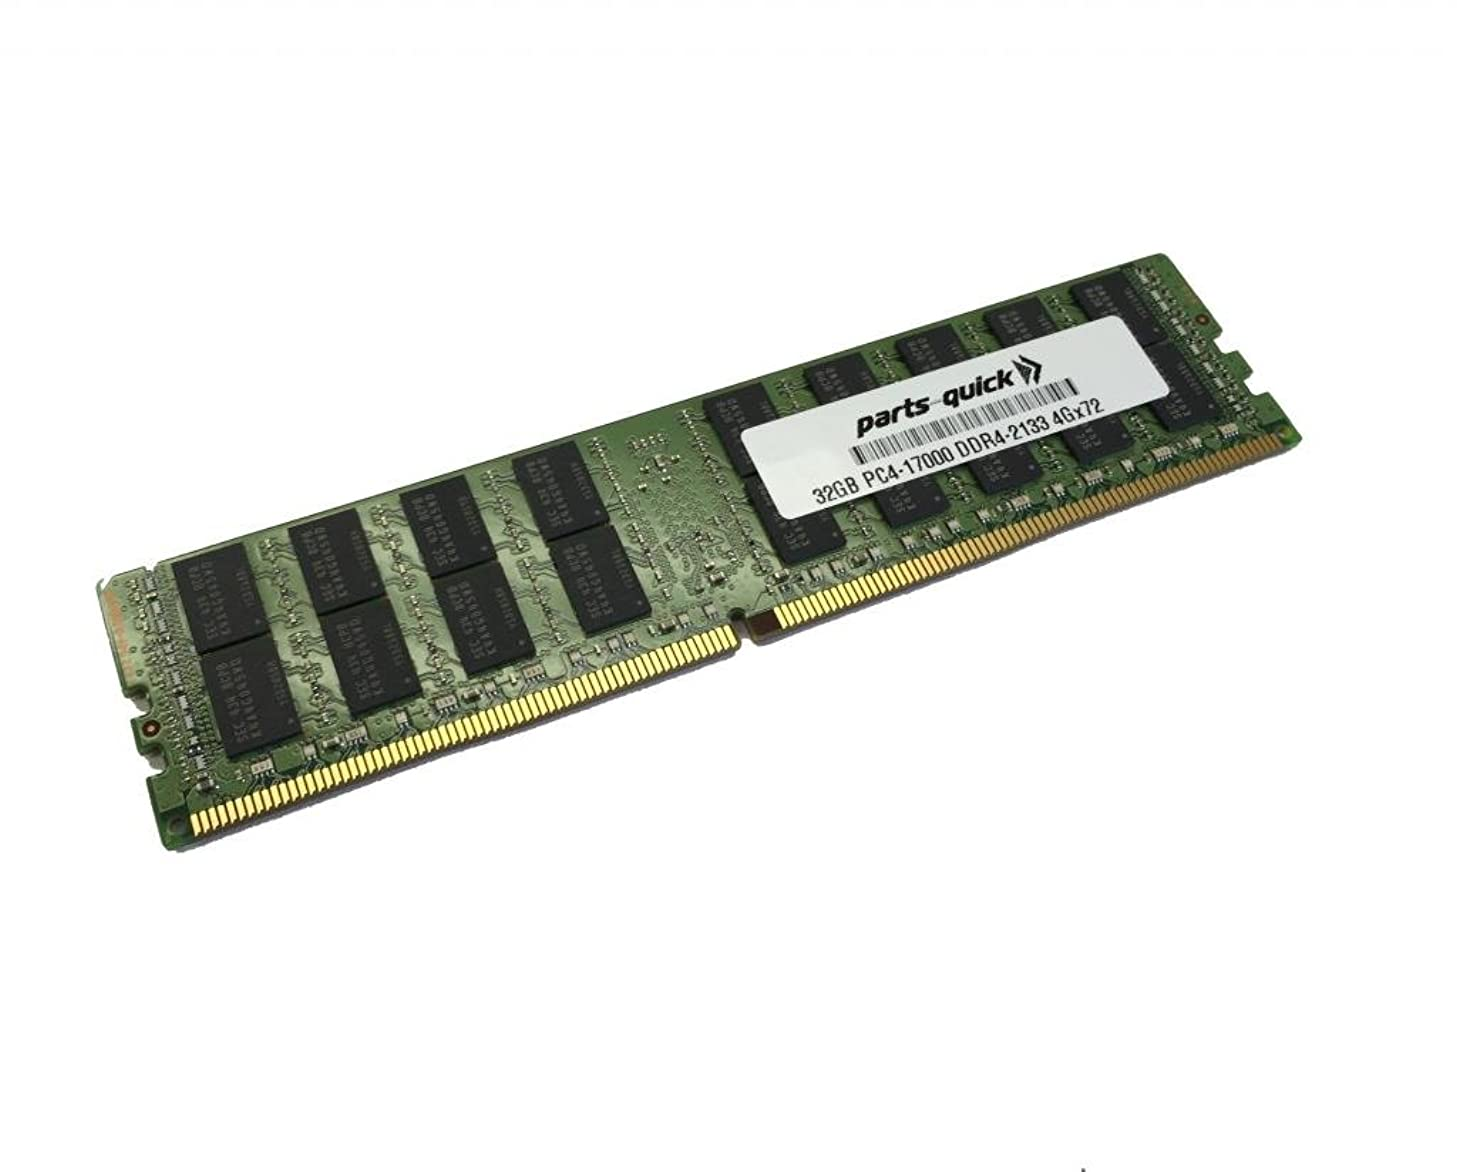 32GB Memory for Dell Precision Workstation 5810 T5810 XL DDR4 PC4-17000 2133 MHz LRDIMM RAM (PARTS-QUICK BRAND)